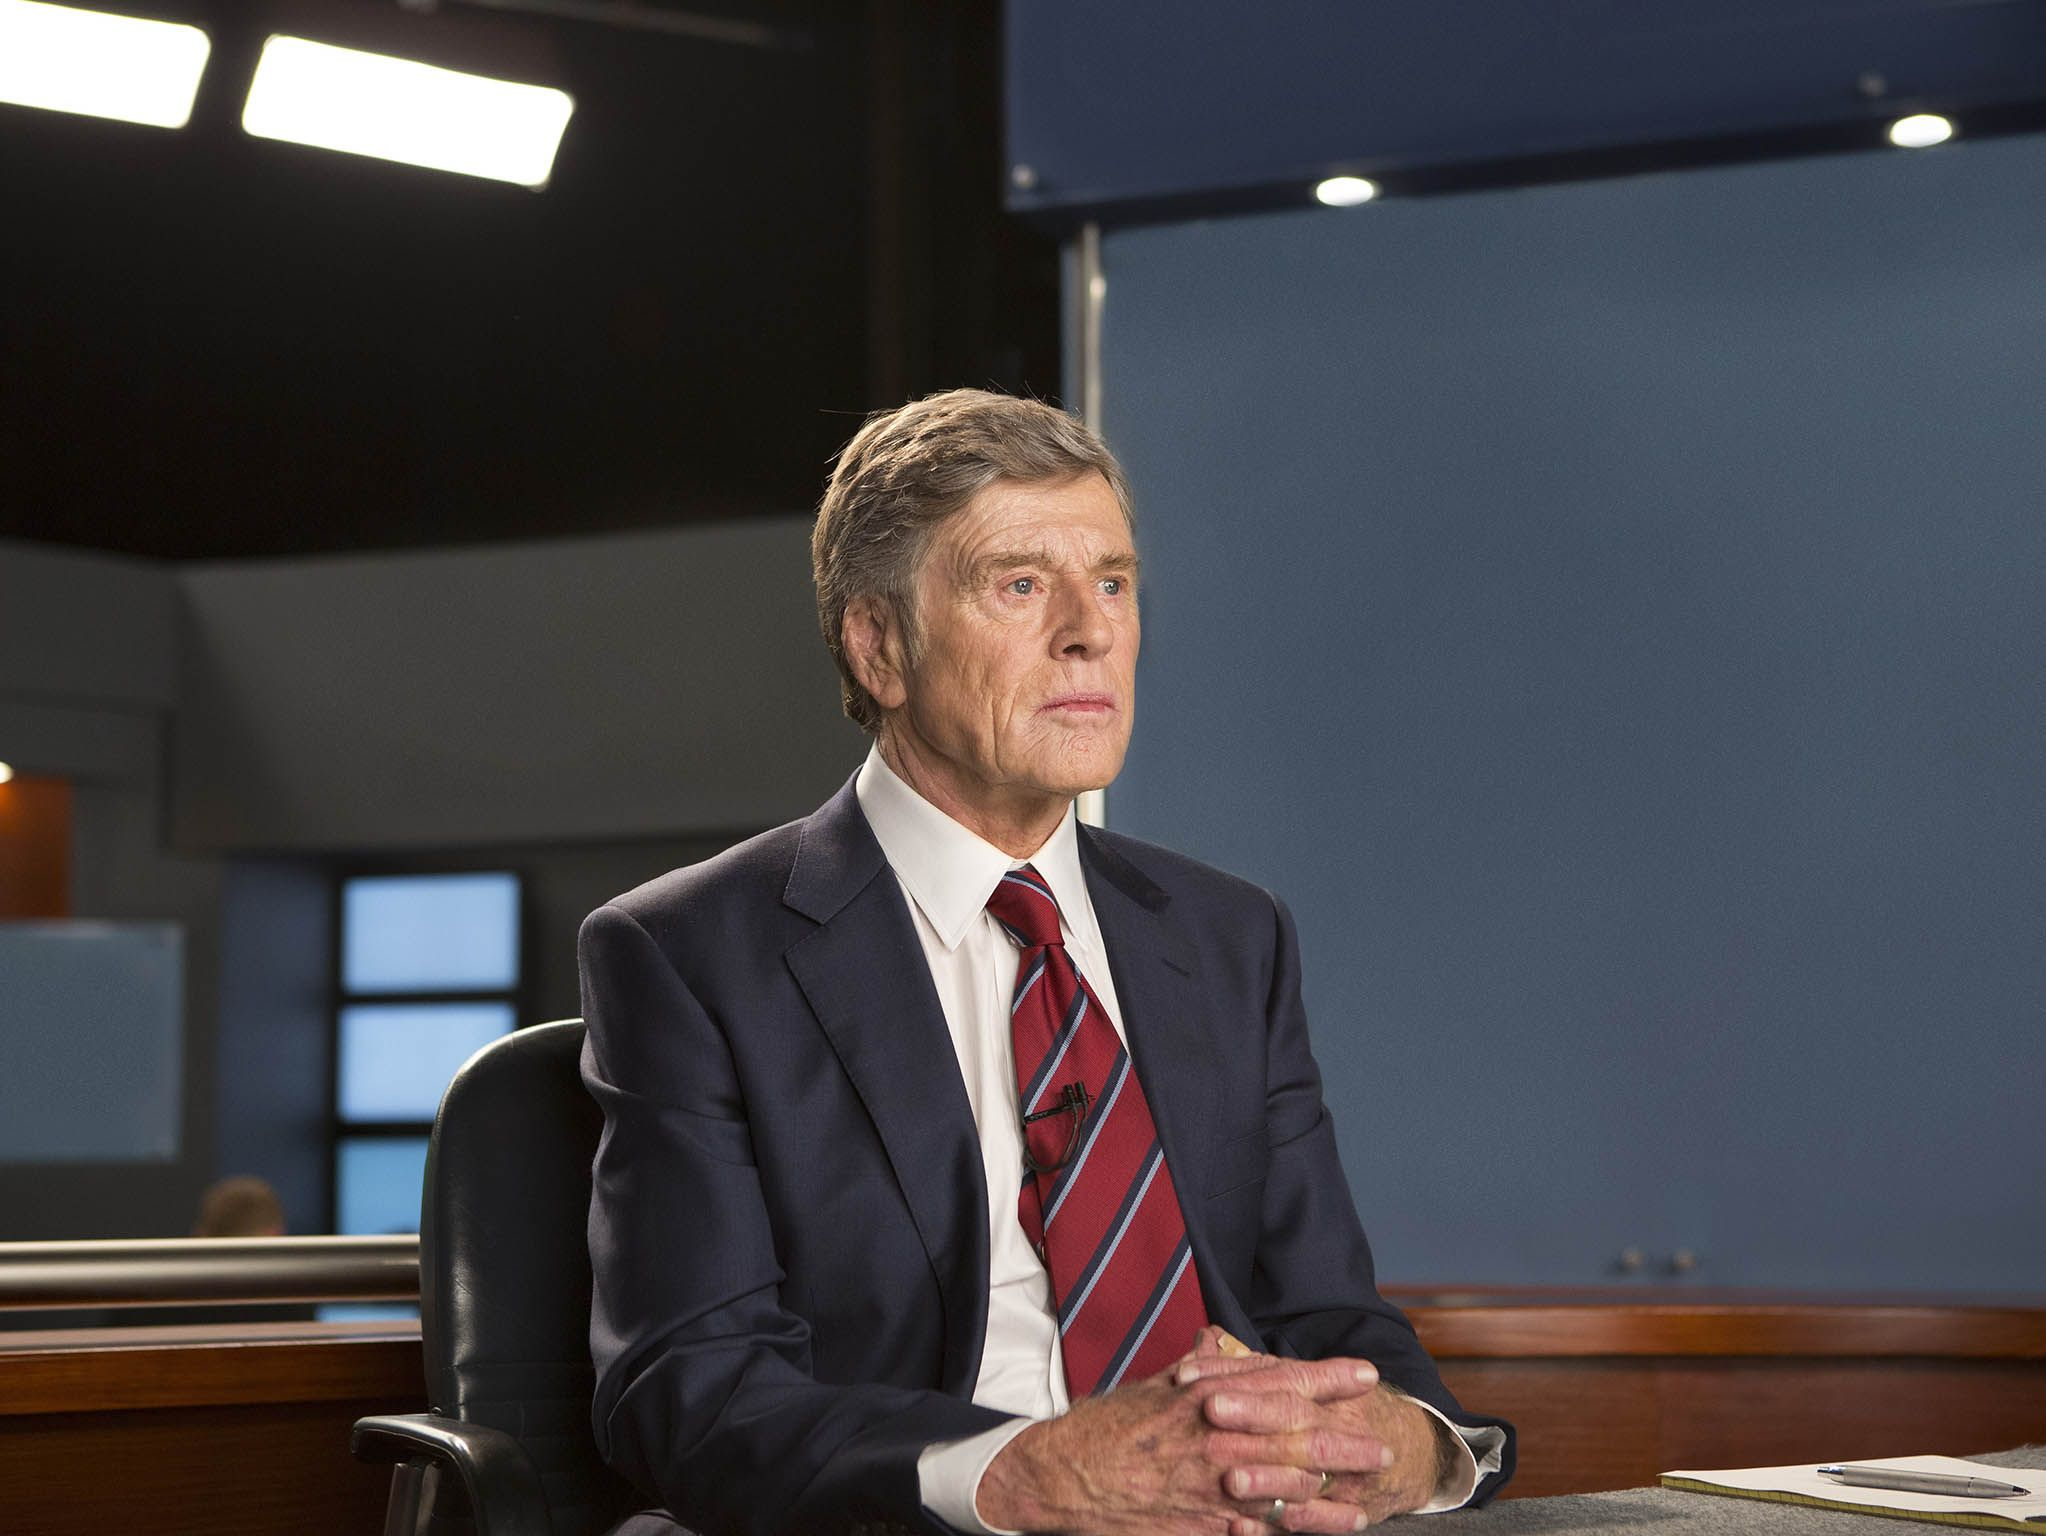 Robert Redford's new film continues his career